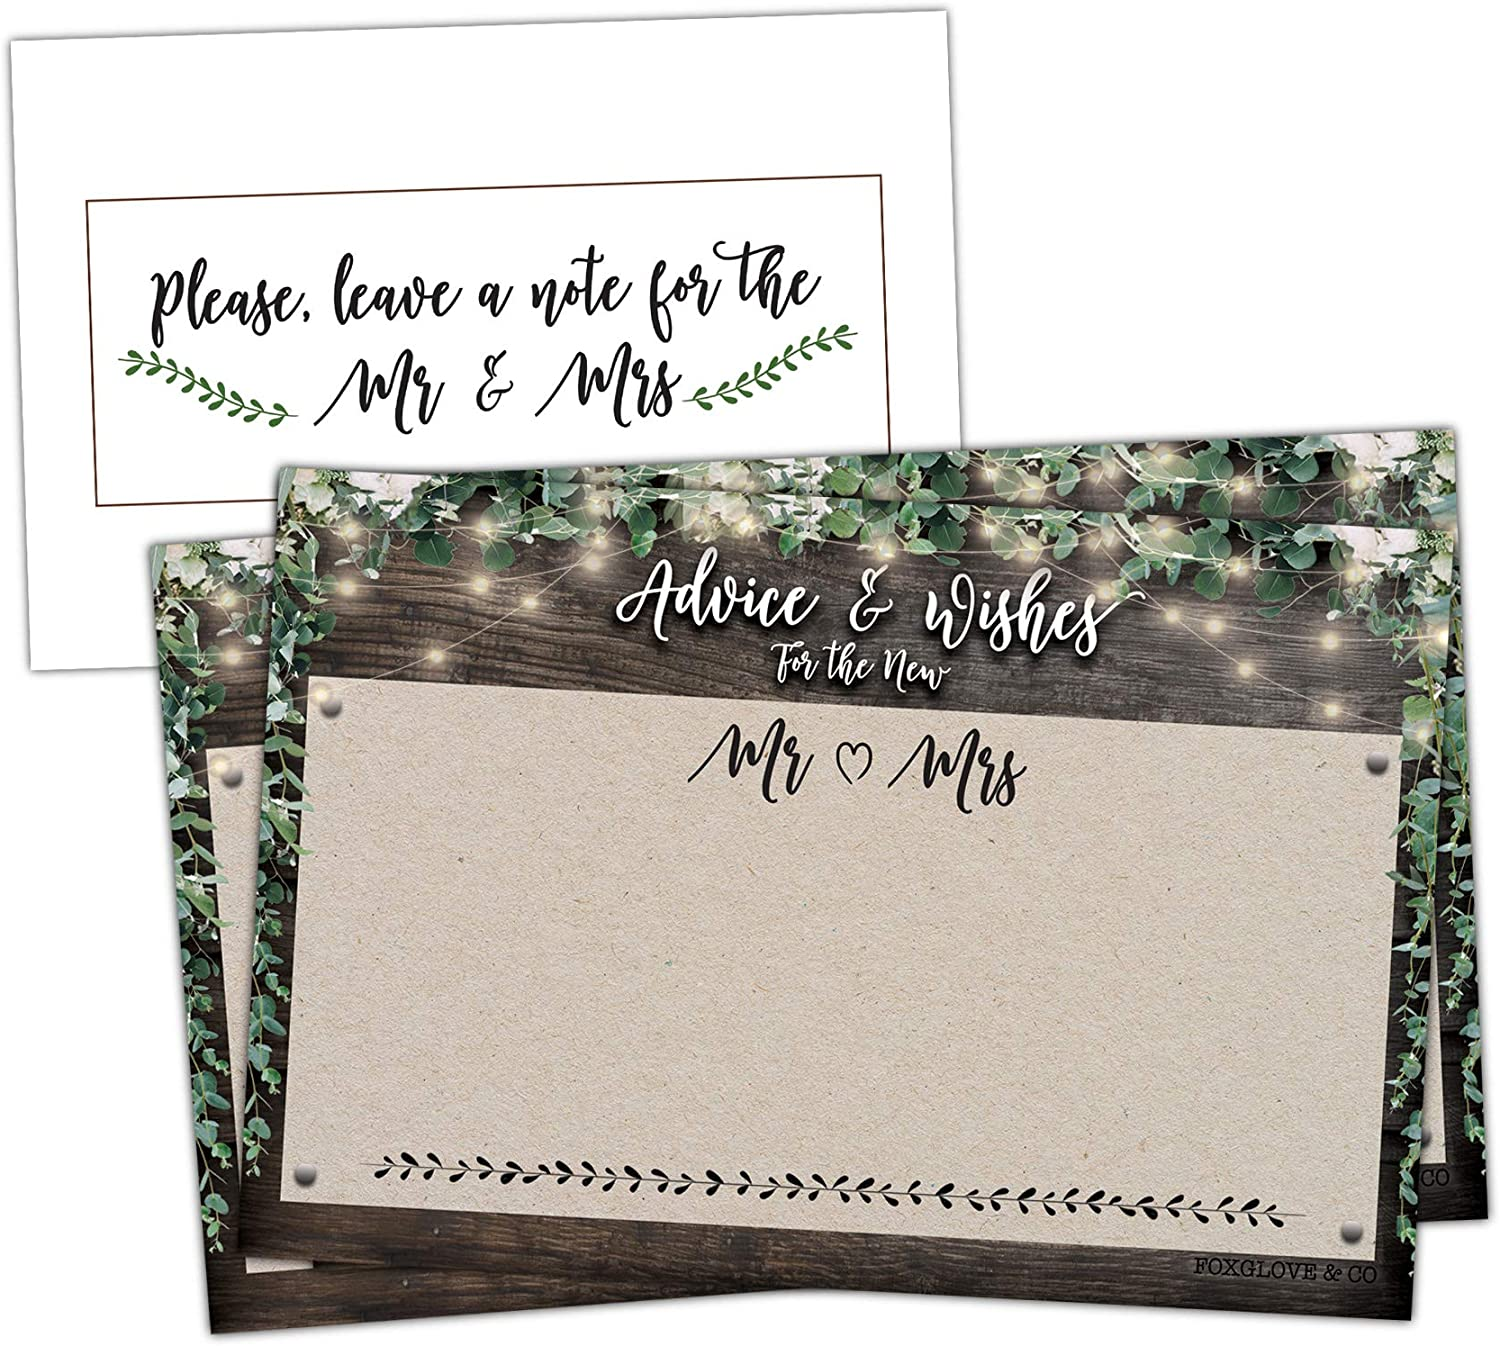 Rustic Wedding Advice Cards For Bride /& Groom Wishes Wedding Reception 20 Guests